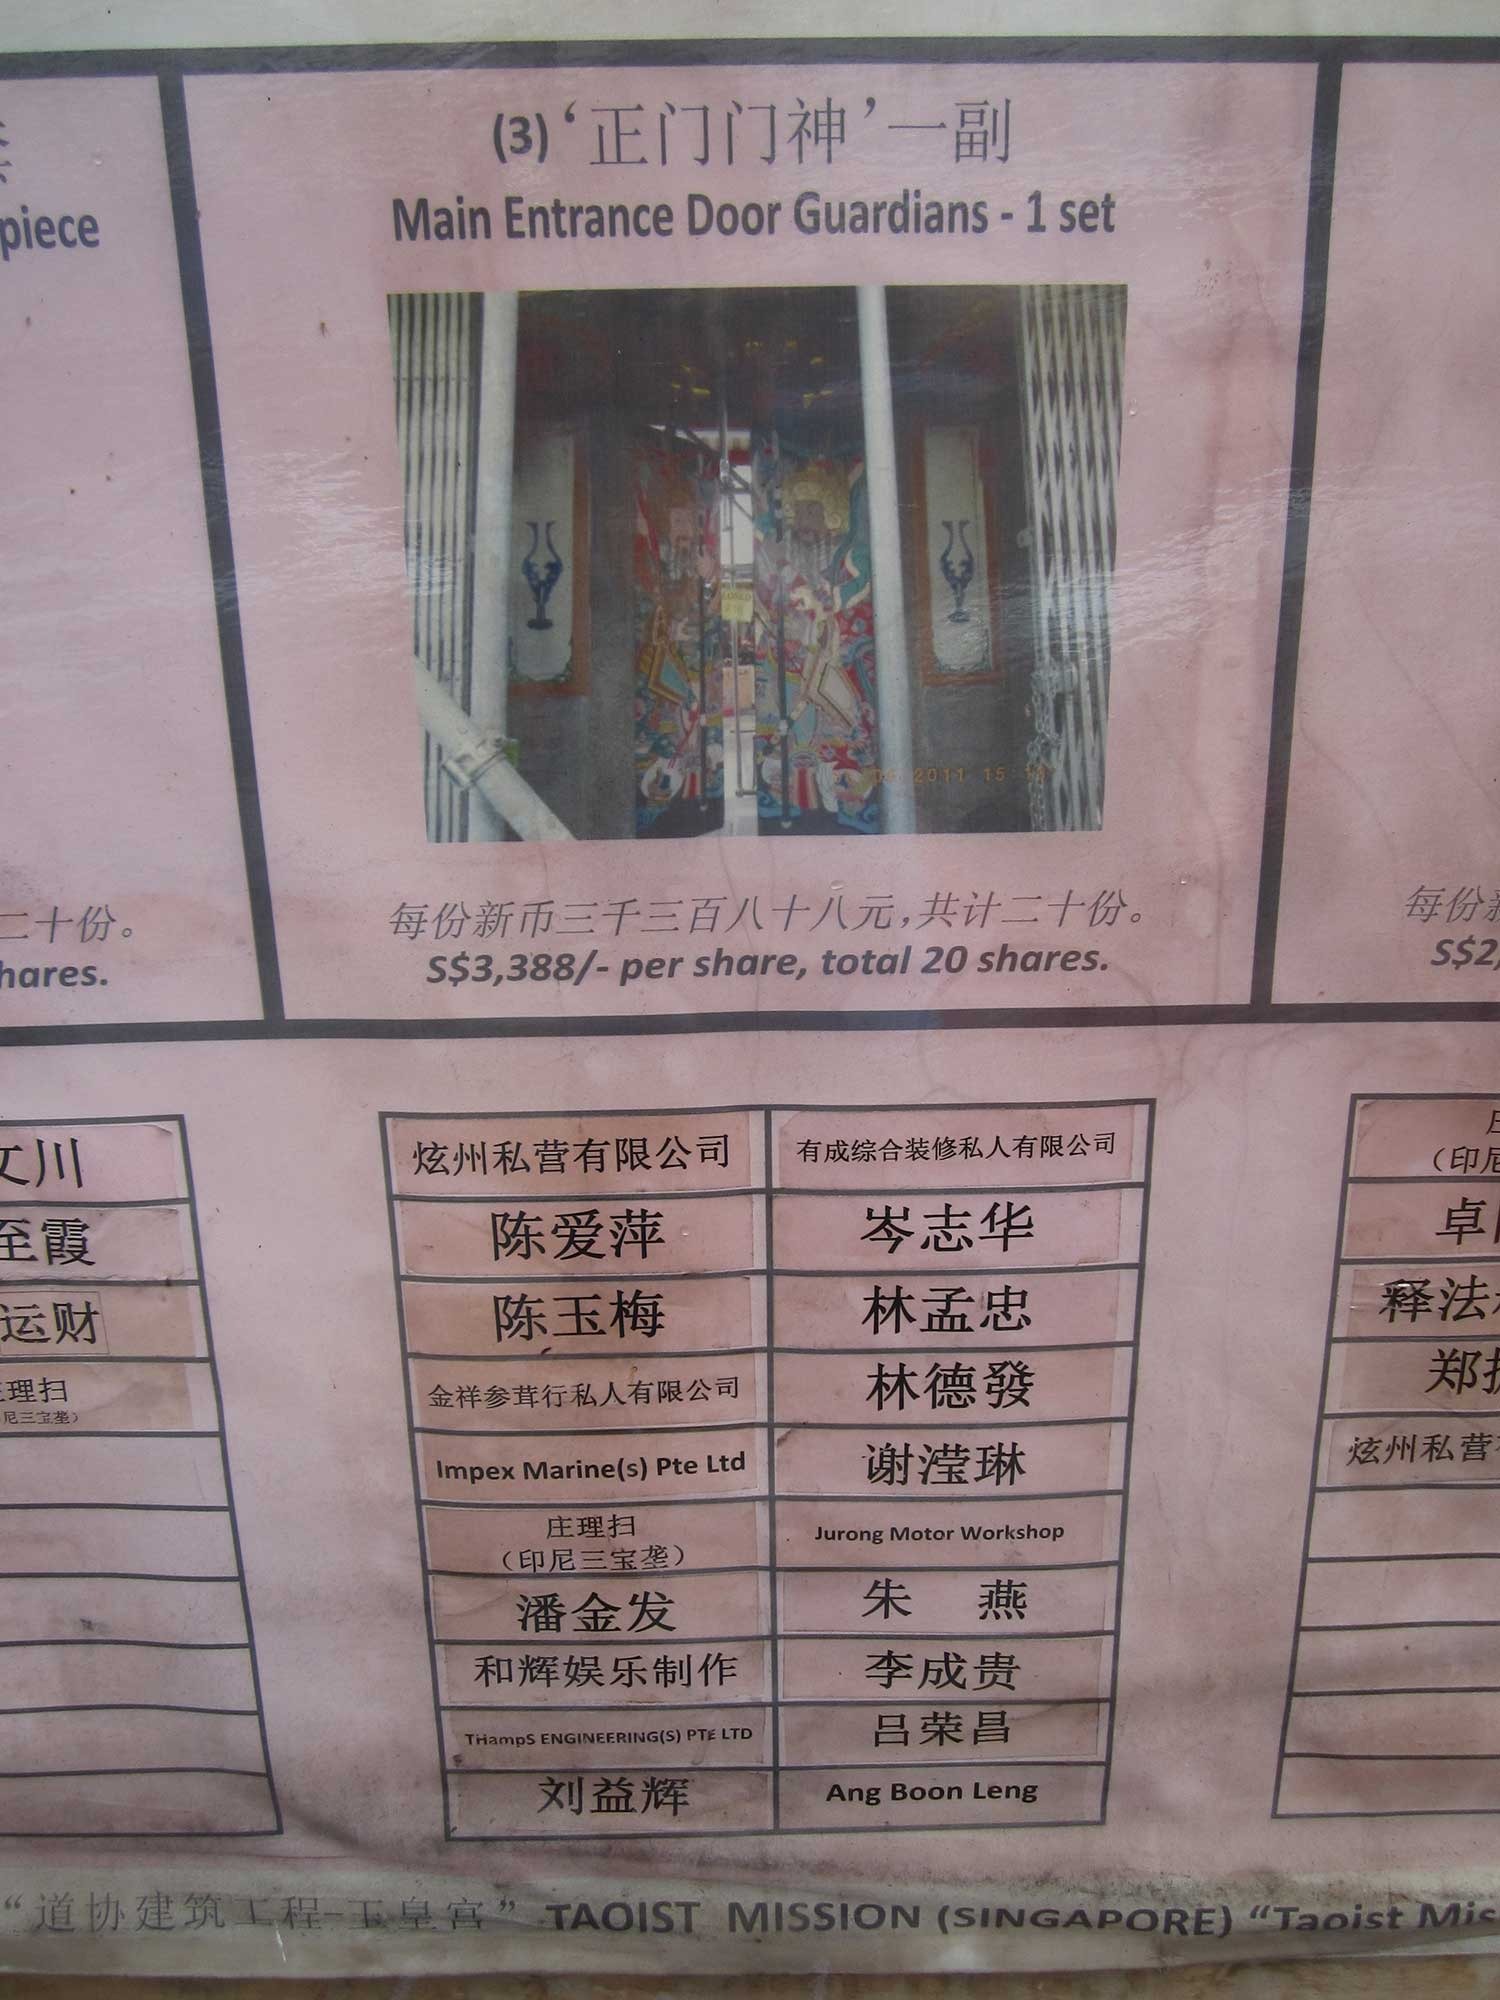 Poster for signing up to crowdfund part of a Chinese temple in singapore